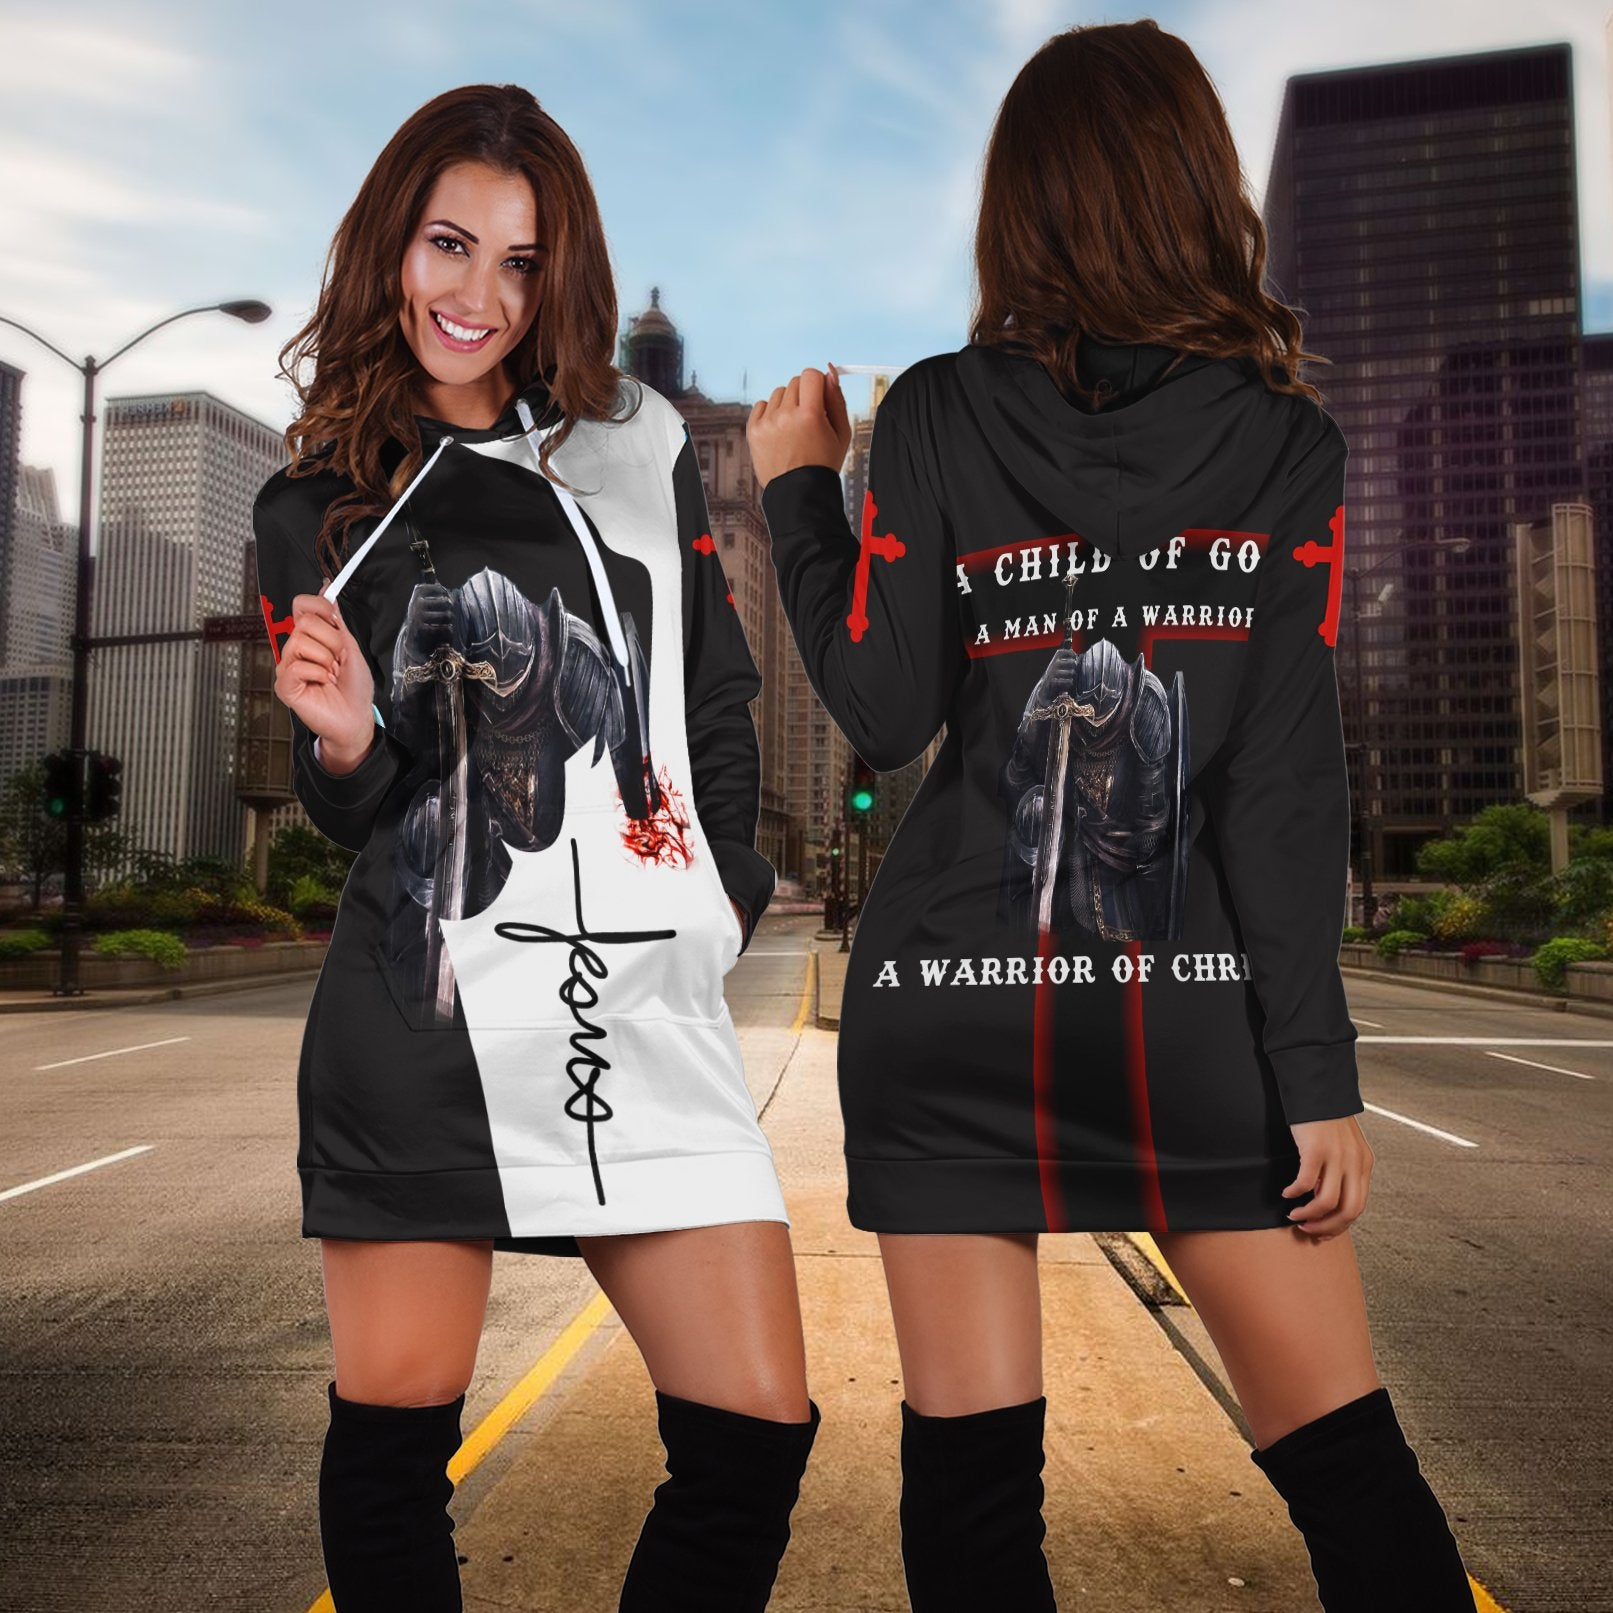 A Child Of God A Man Of A Warrior Of Christ Hoodie Dress - luxamz